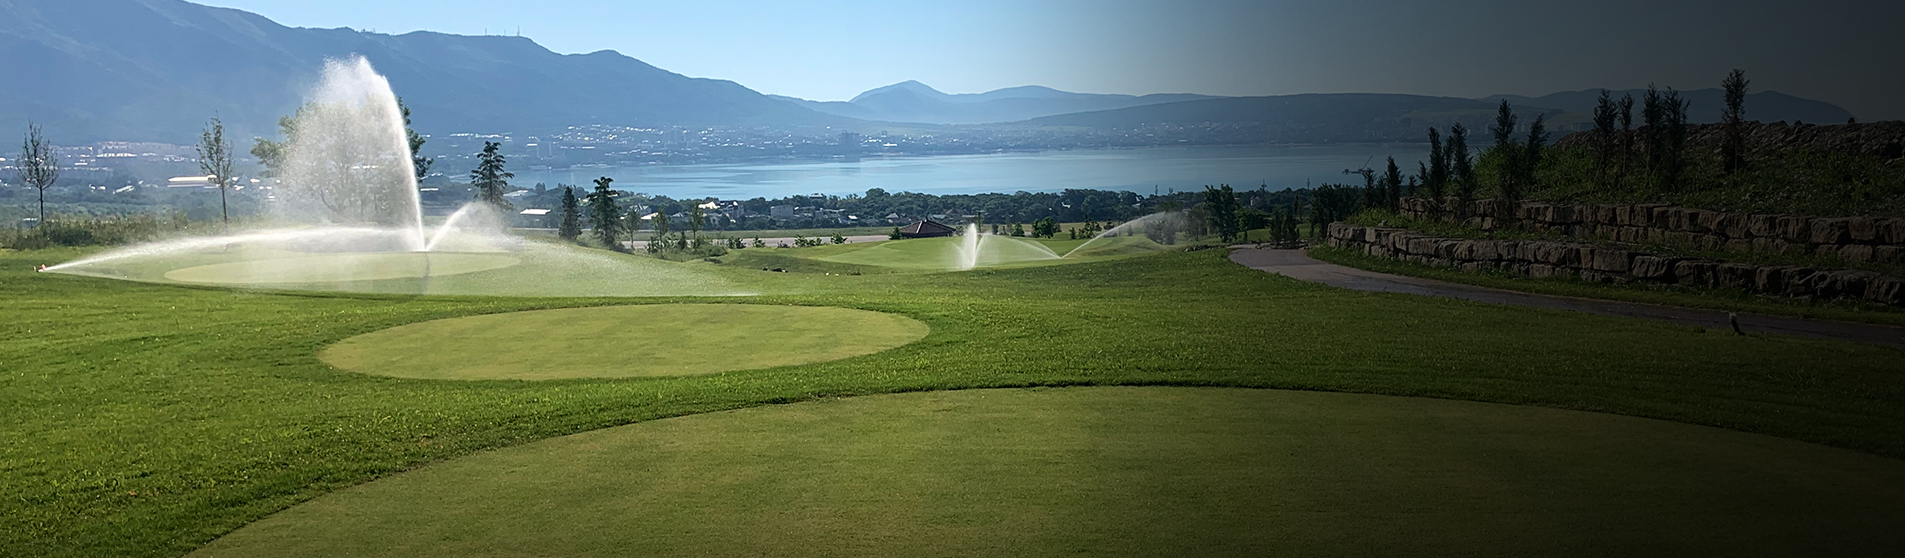 Gelendzhik Golf Course